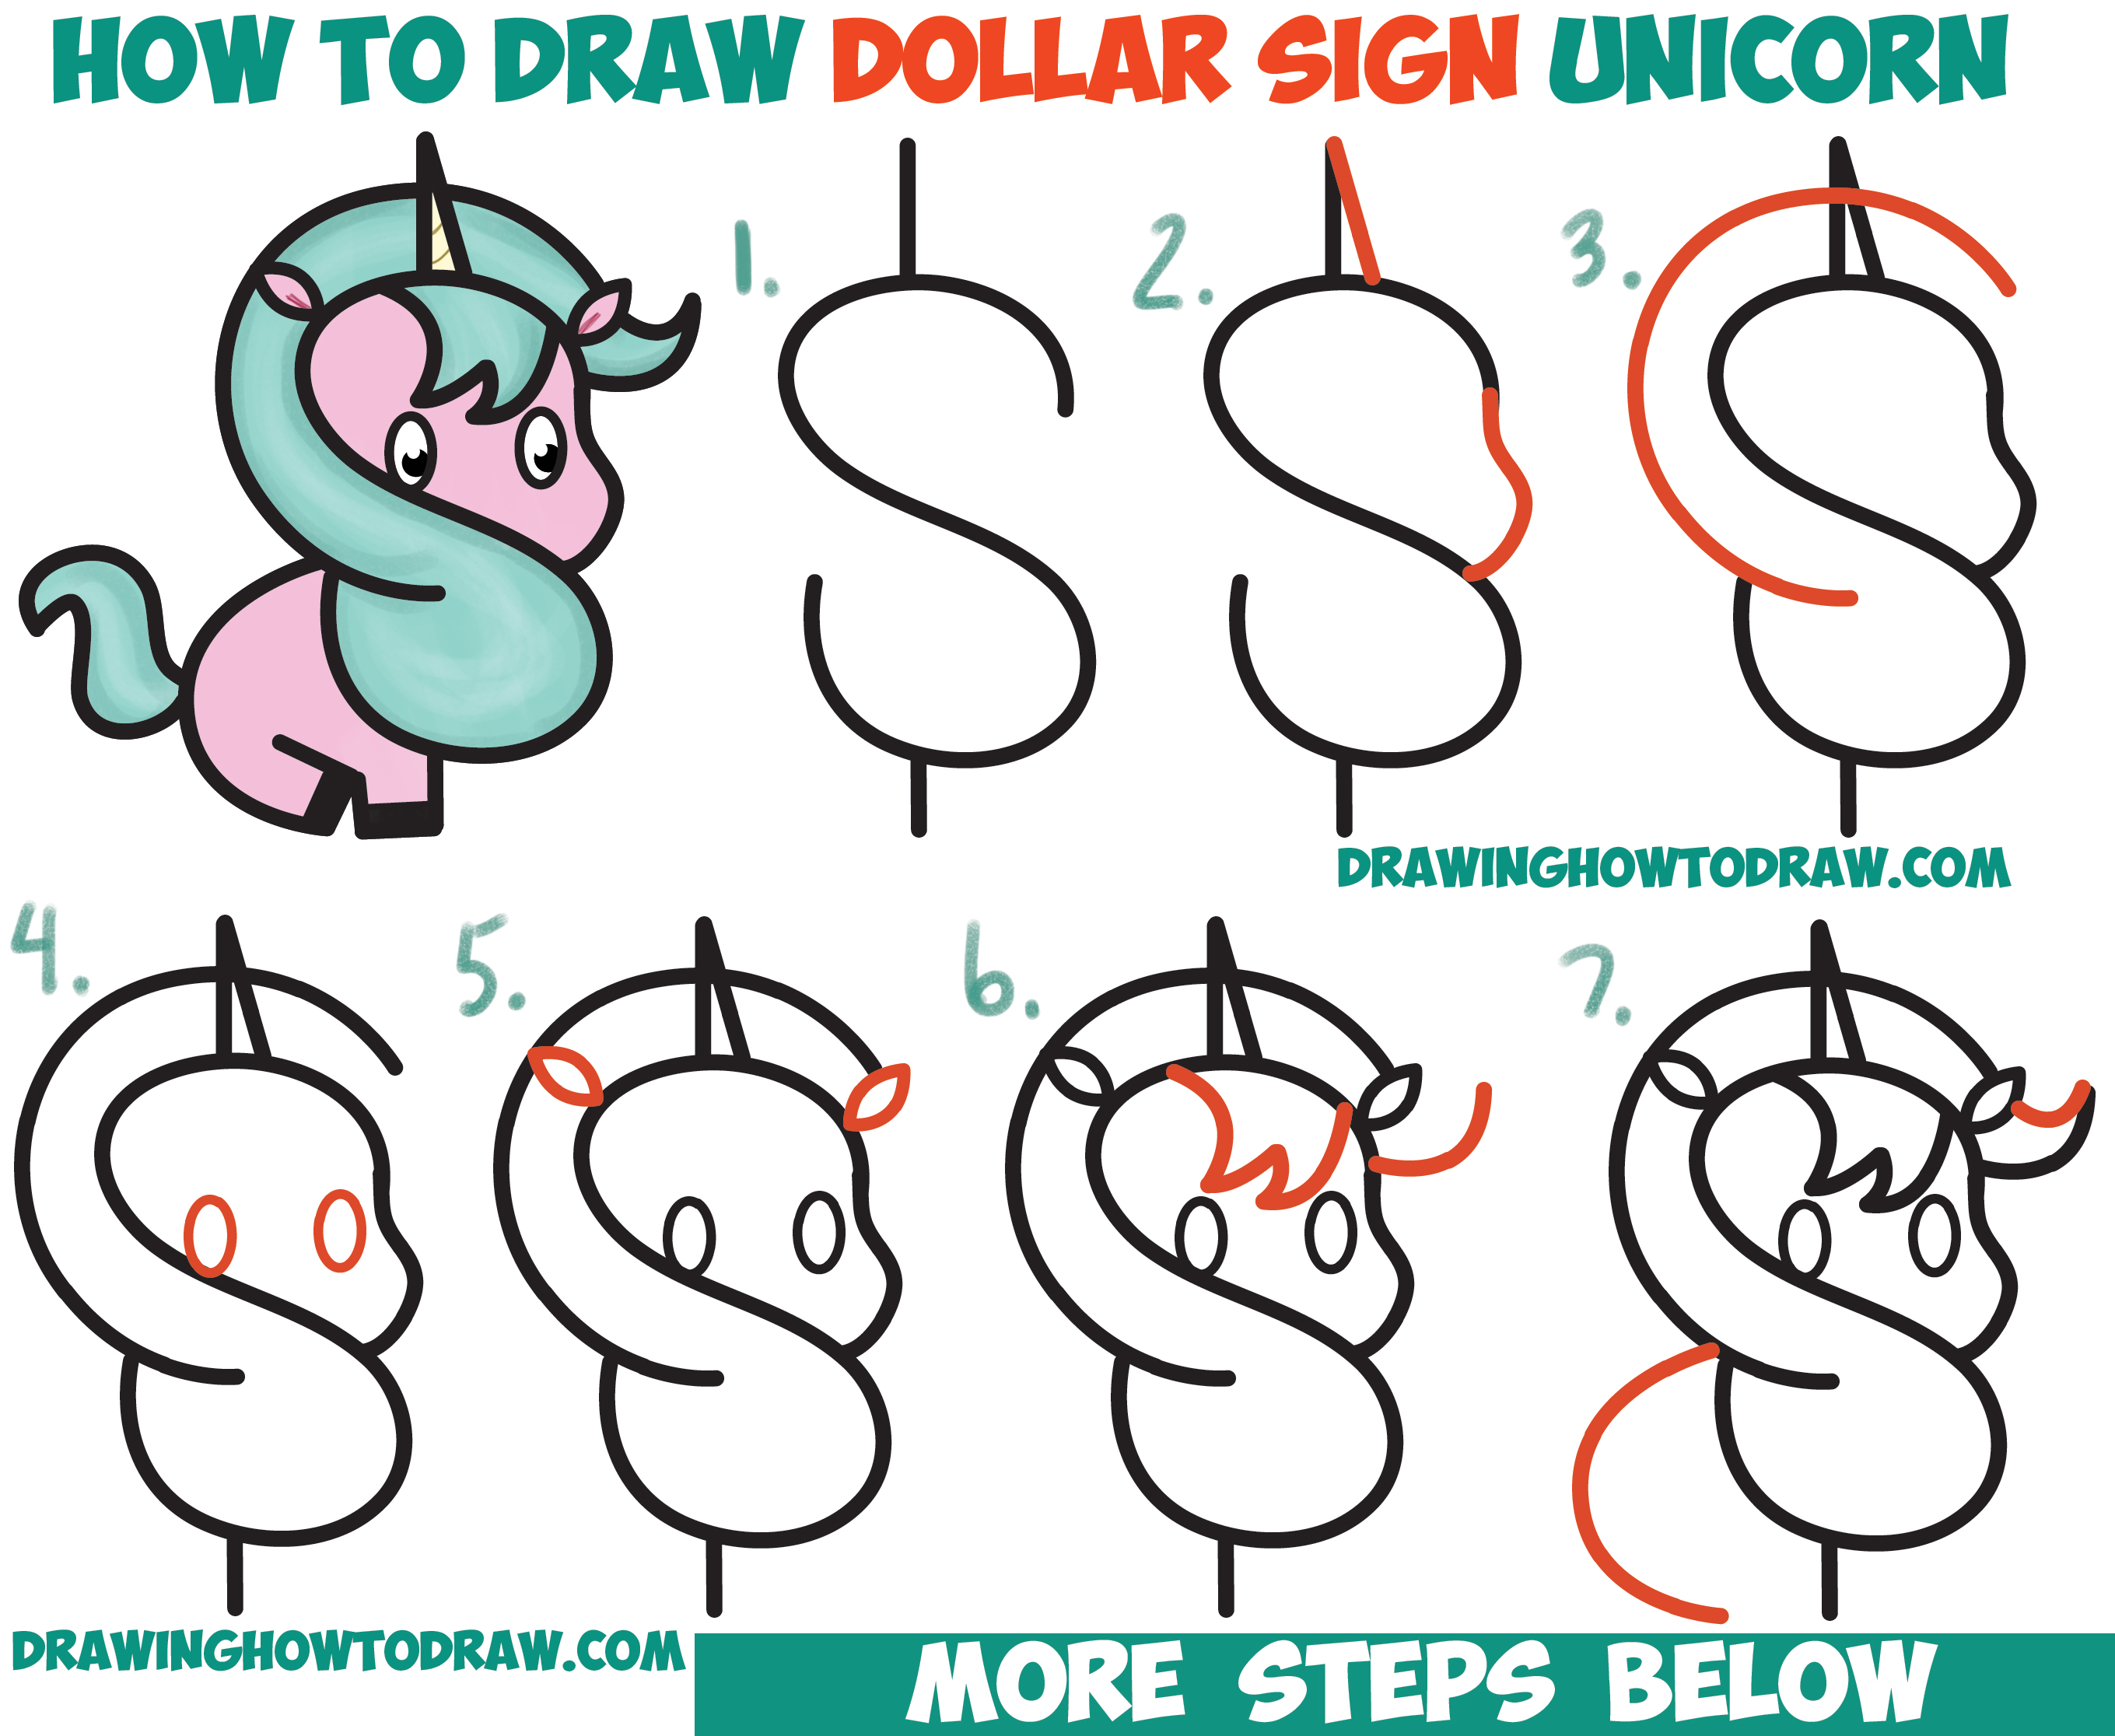 2719x2232 How To Draw A Cute Cartoon Unicorn (Kawaii) From A Dollar Sign